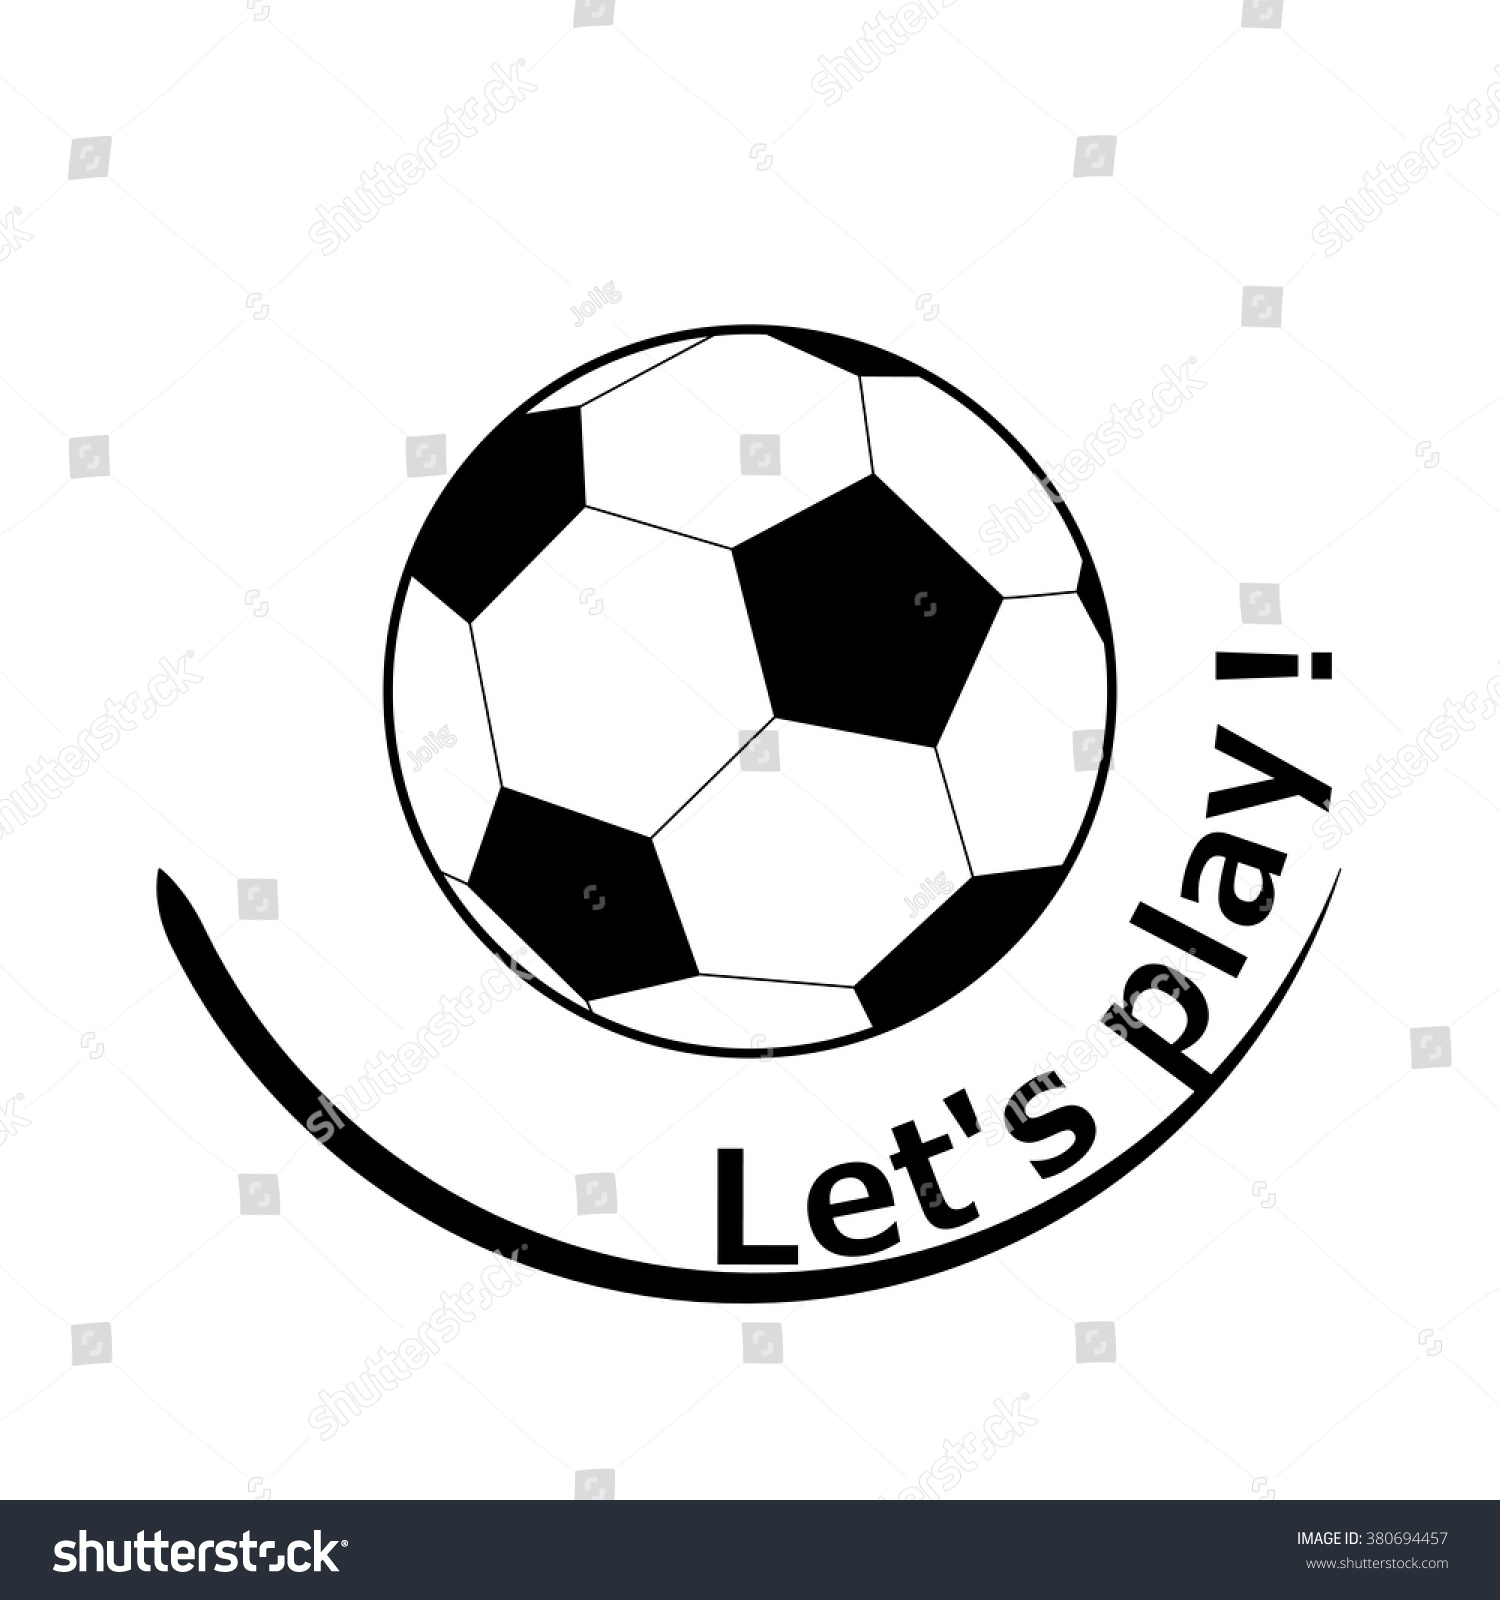 Vector logo design elements round flat stock vector 380694457 vector logo design elements round flat icon with soccer ball emblem for football club buycottarizona